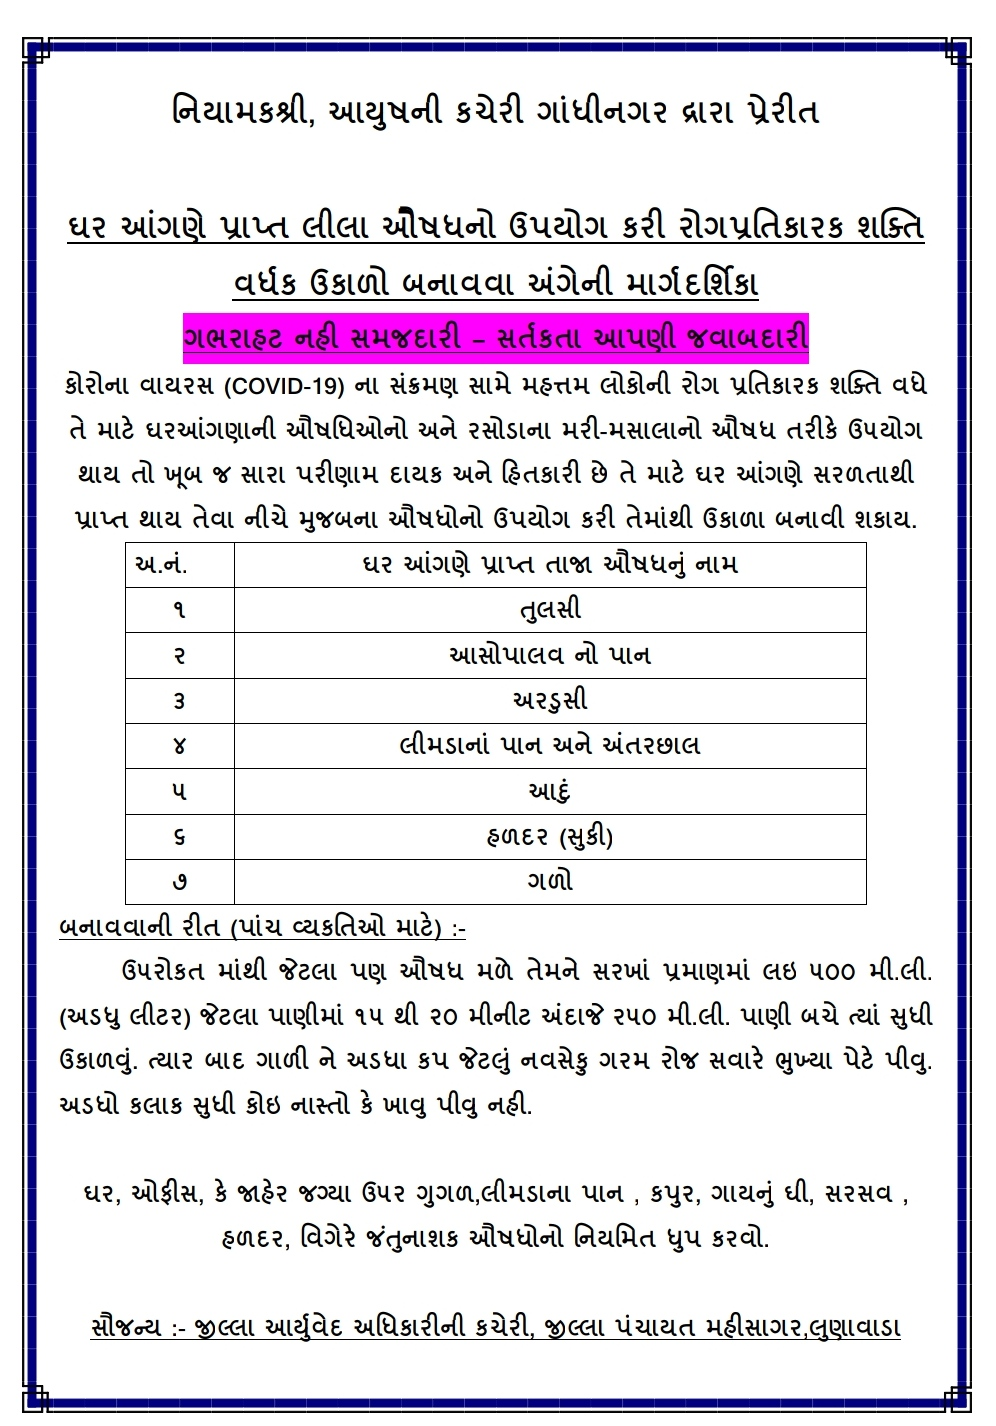 Gujarat government